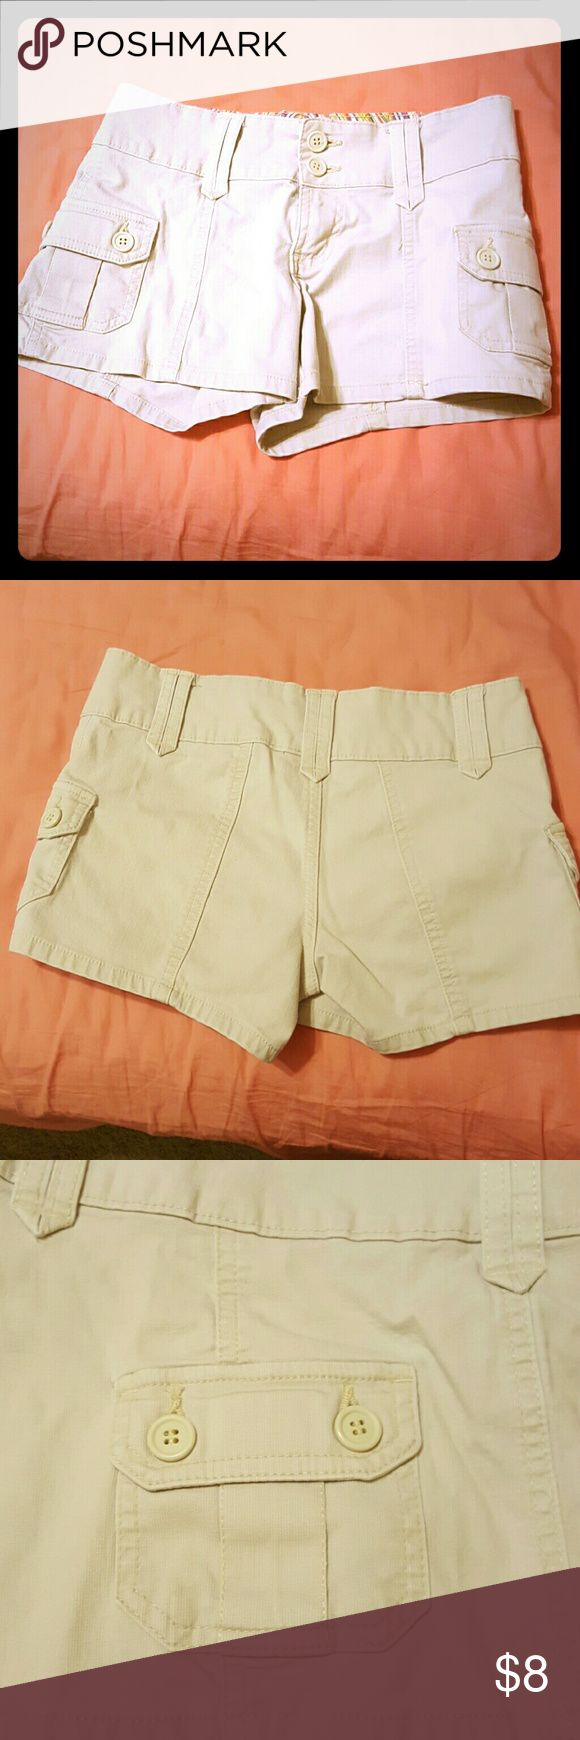 Khaki/Beige Shorts Approximately 10 inches long. Double button shorts with two side pockets. Sorry, no pockets on the backside. Get ready for spring & summer with this fashion staple! All my clothes come from a smoke free home. No stains or snags. Bundle for extra savings! Shorts